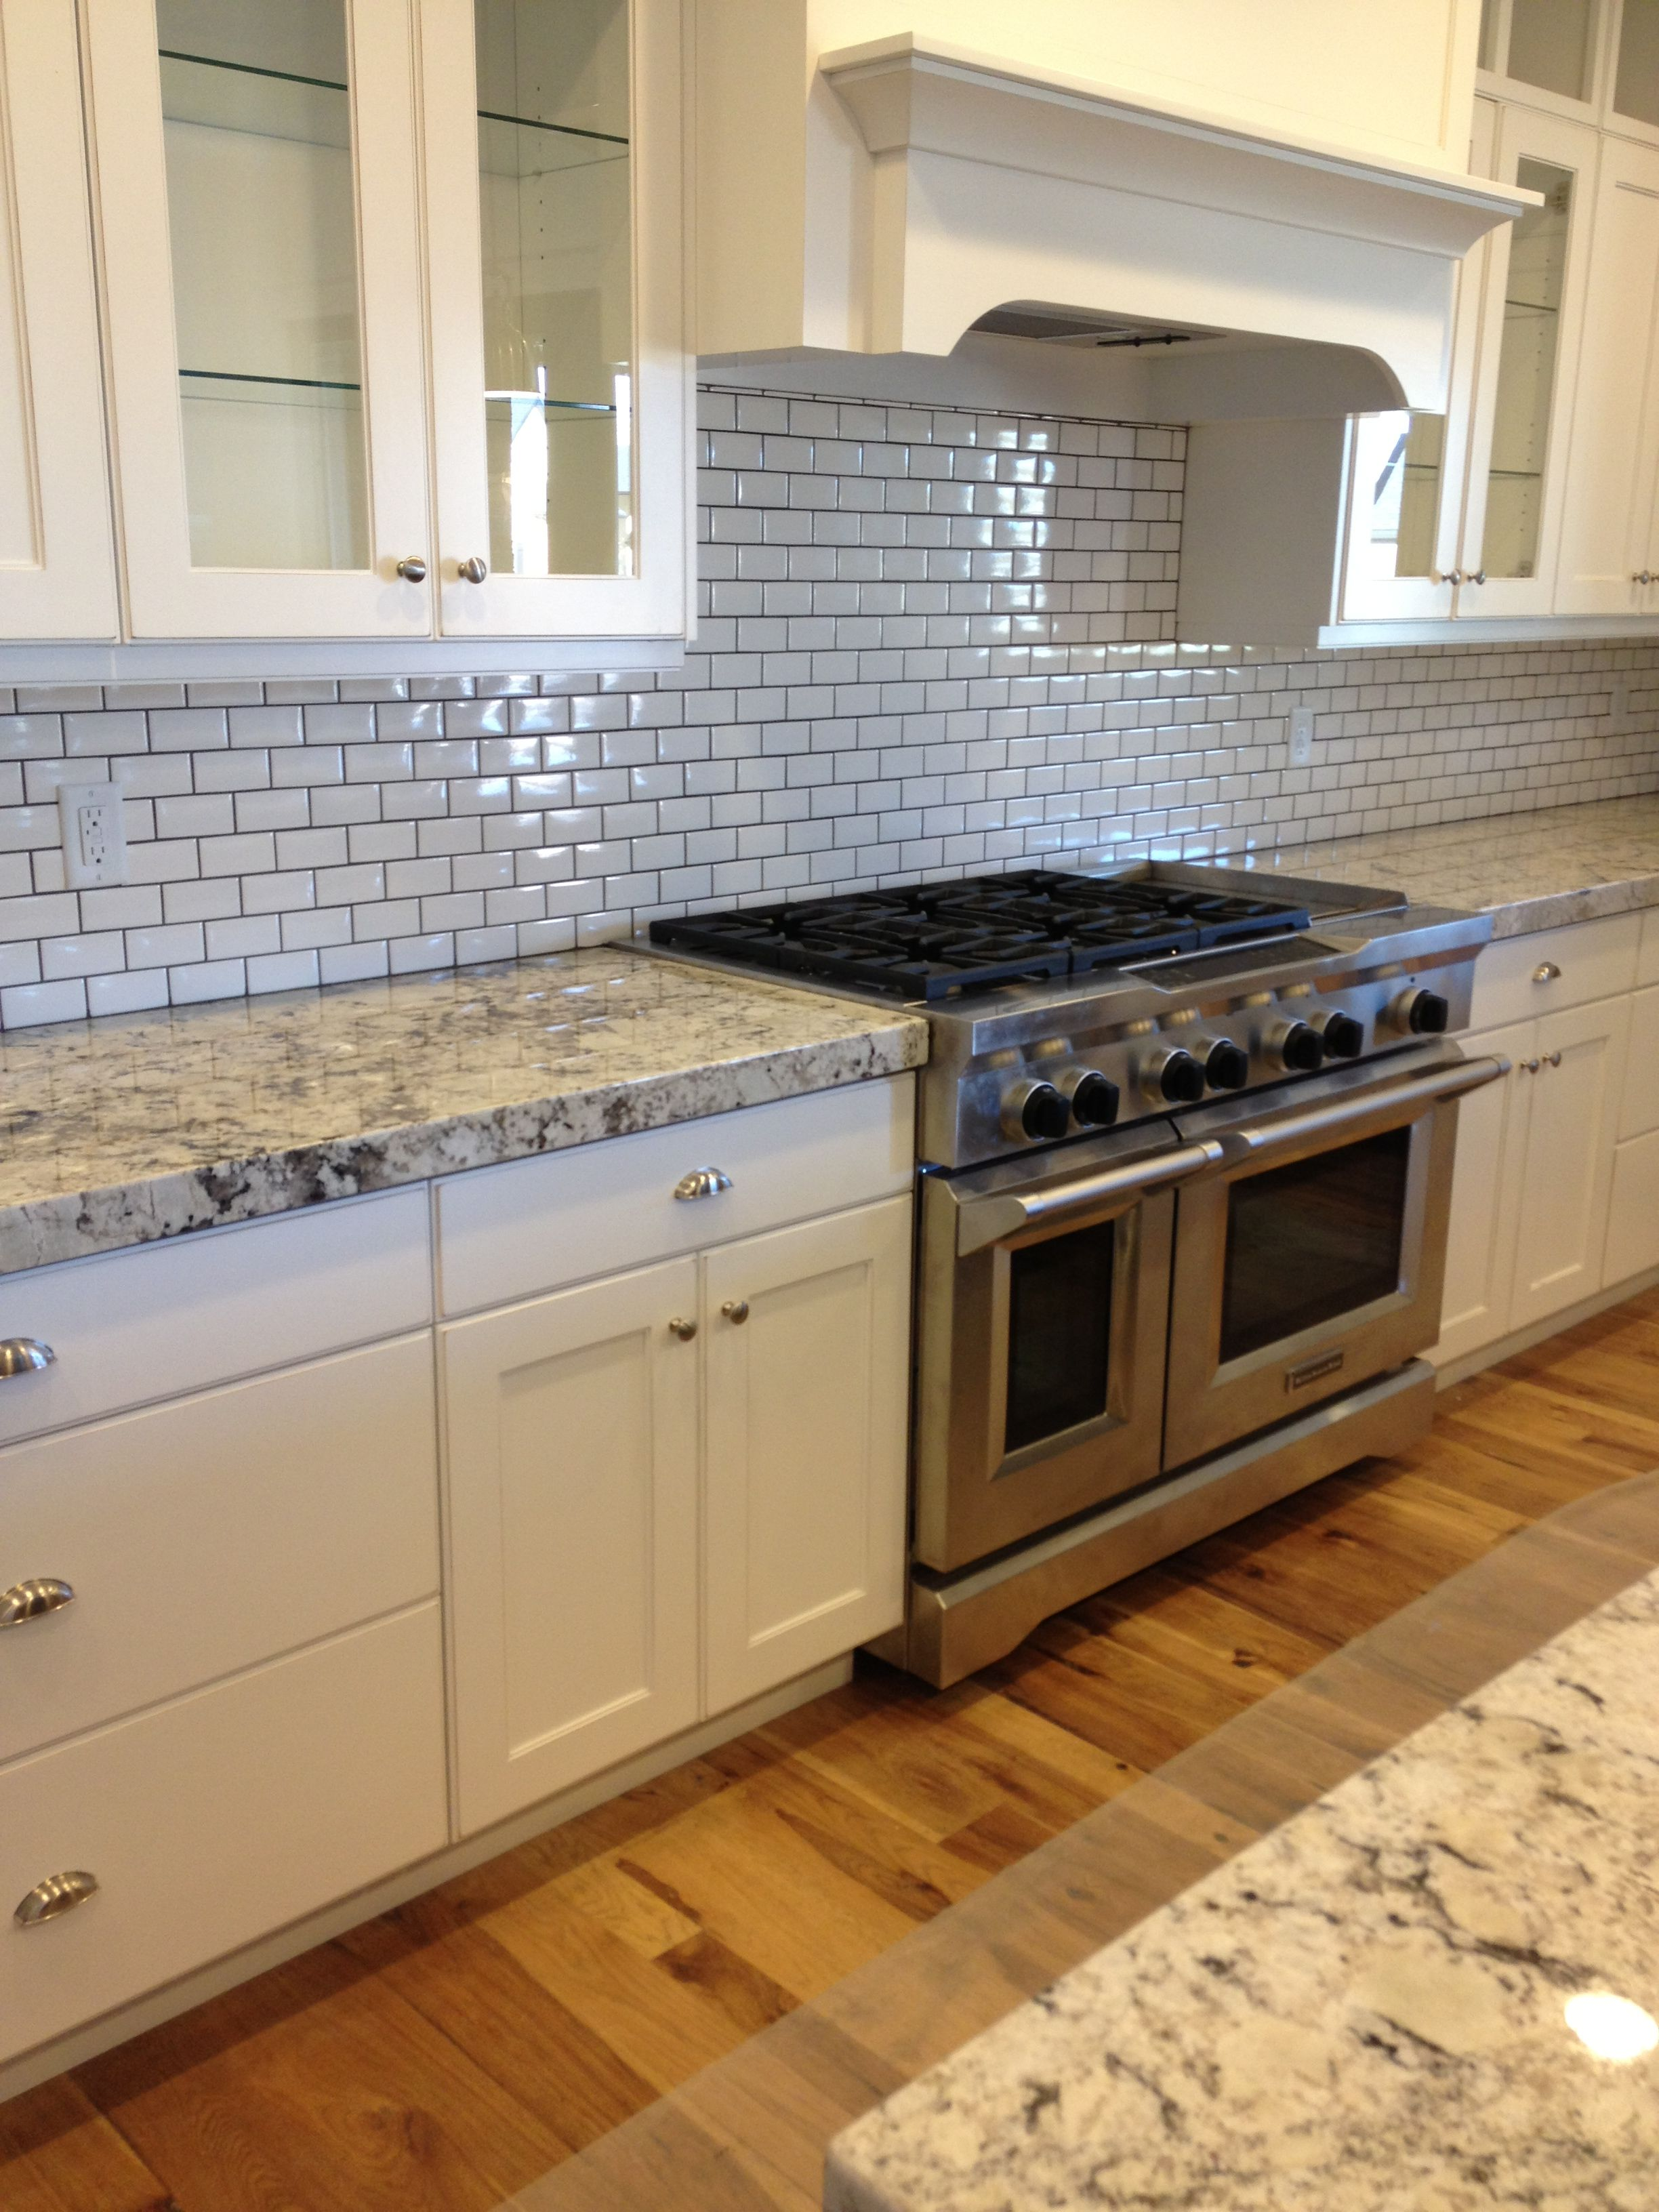 White Subway Tile Backsplash | Subway tile | Pinterest